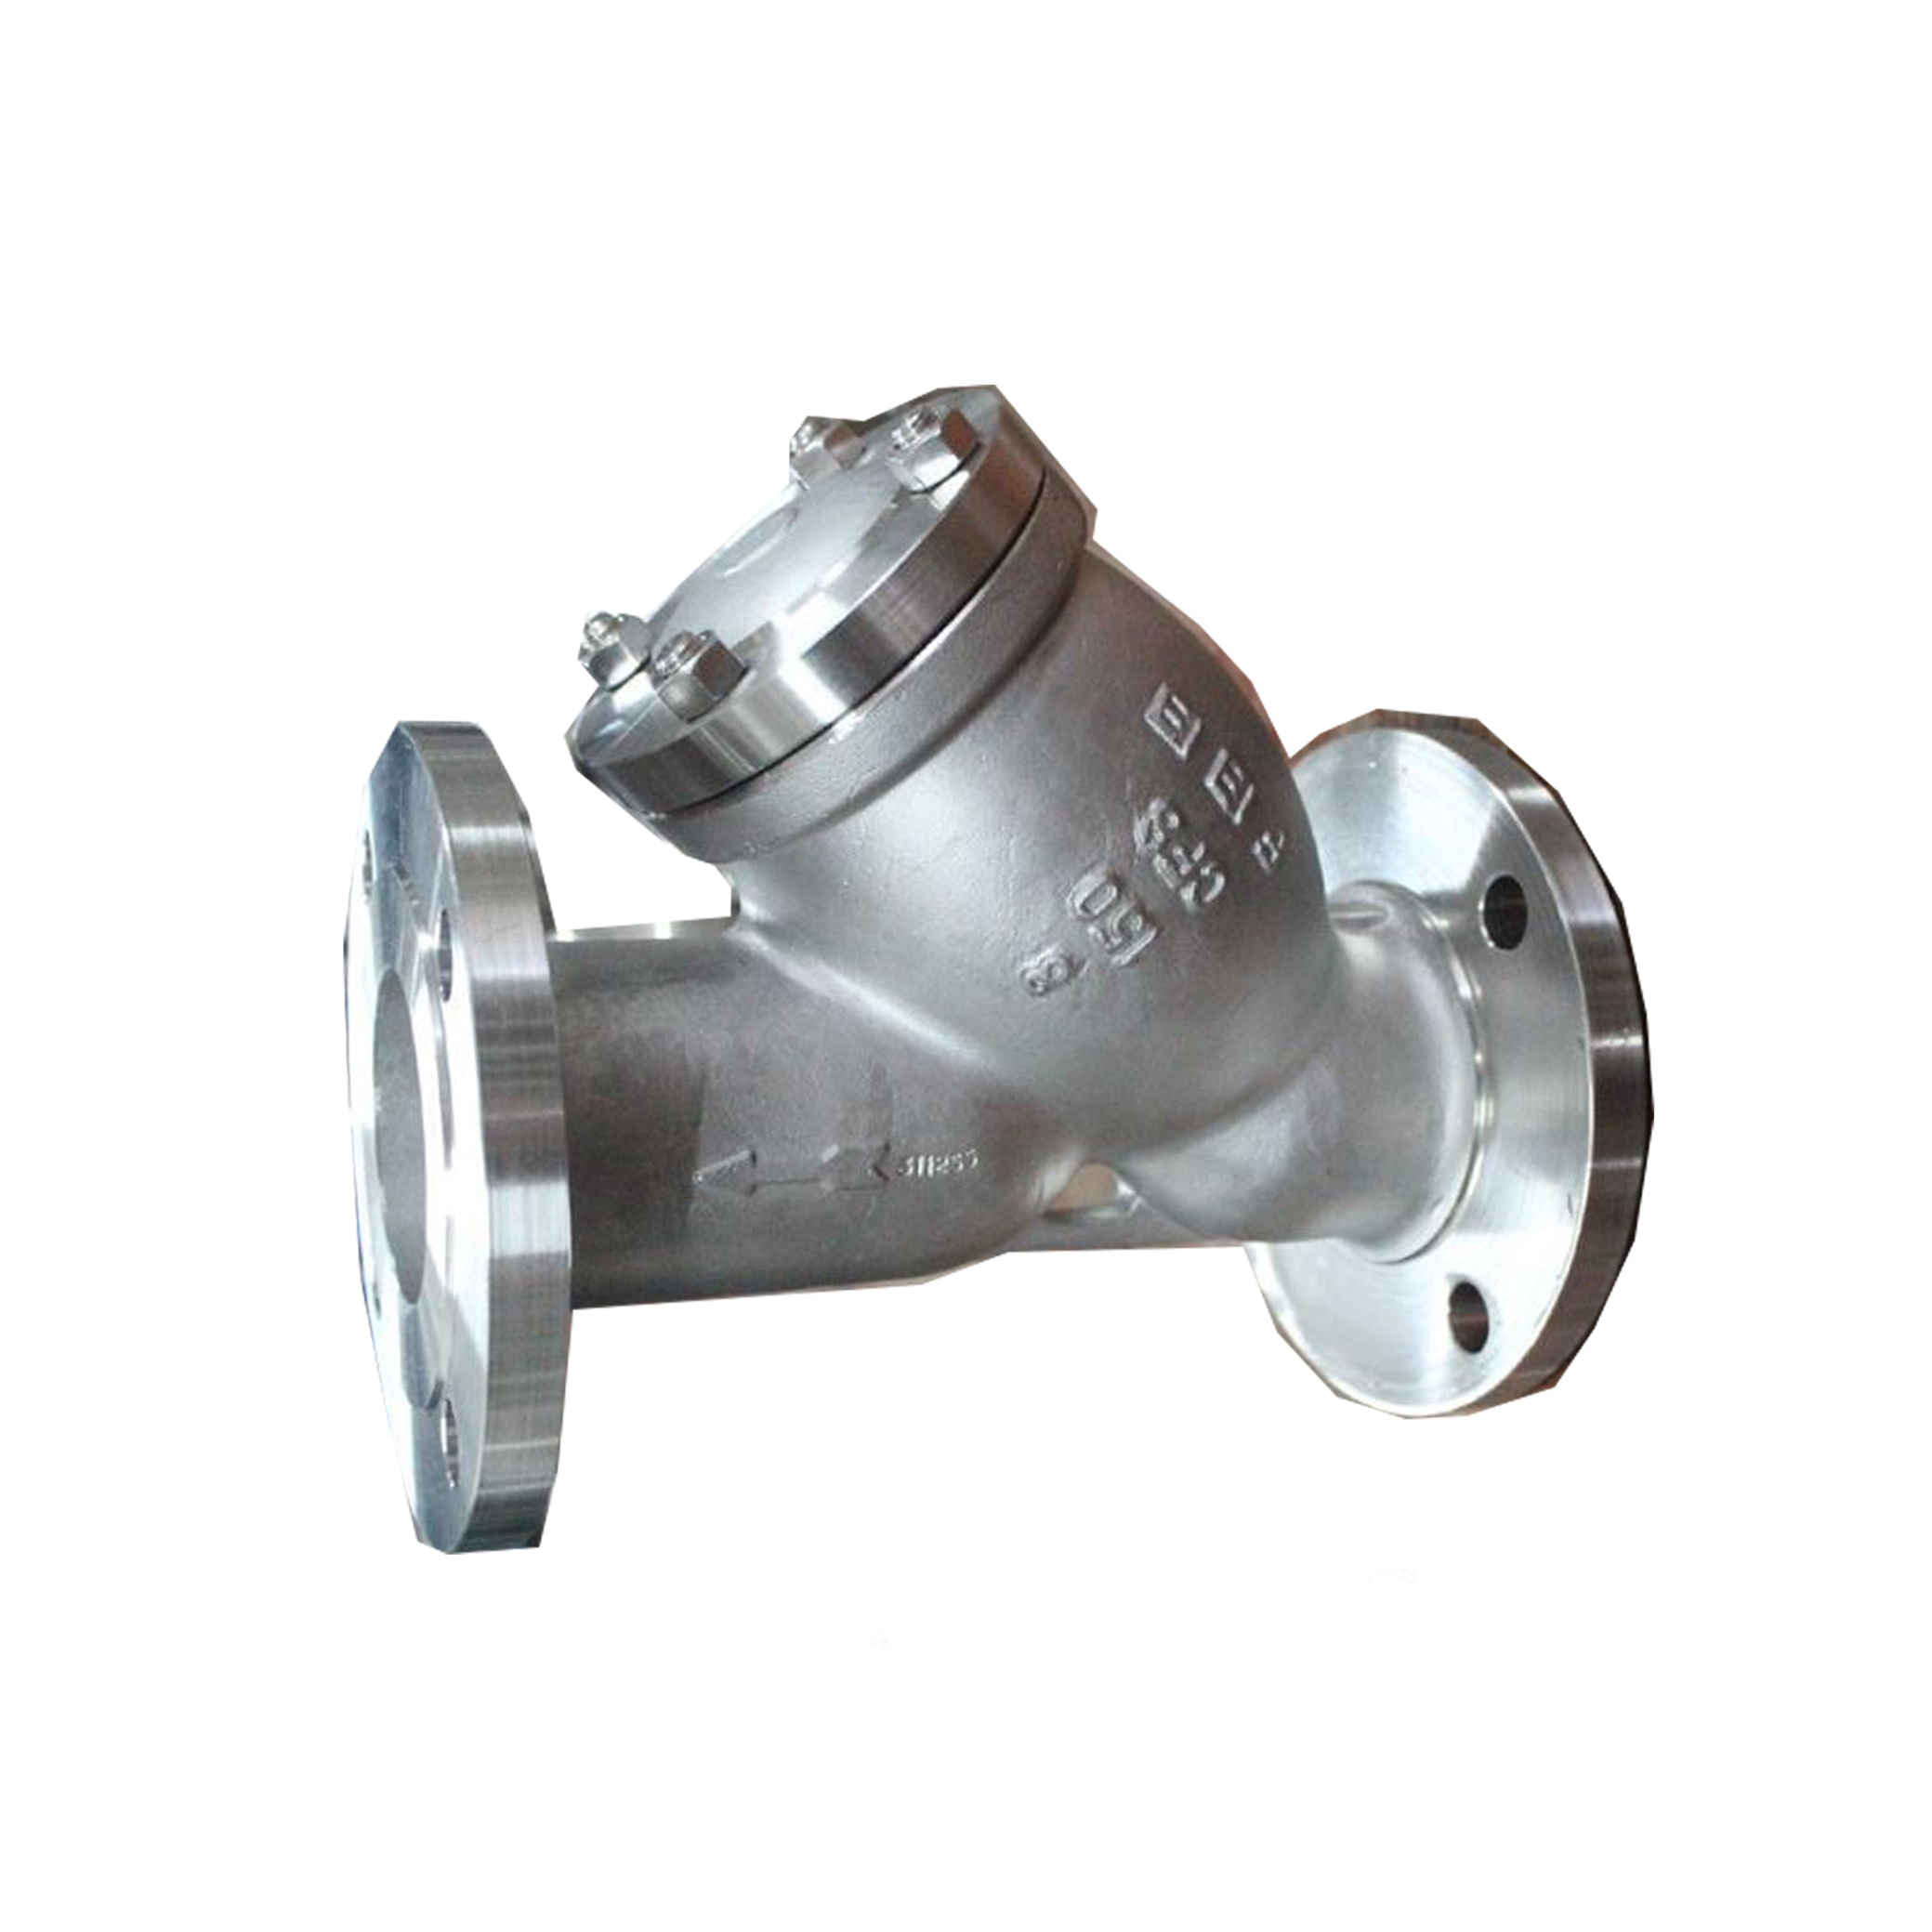 MZC Stainless Y-Strainer Flange End